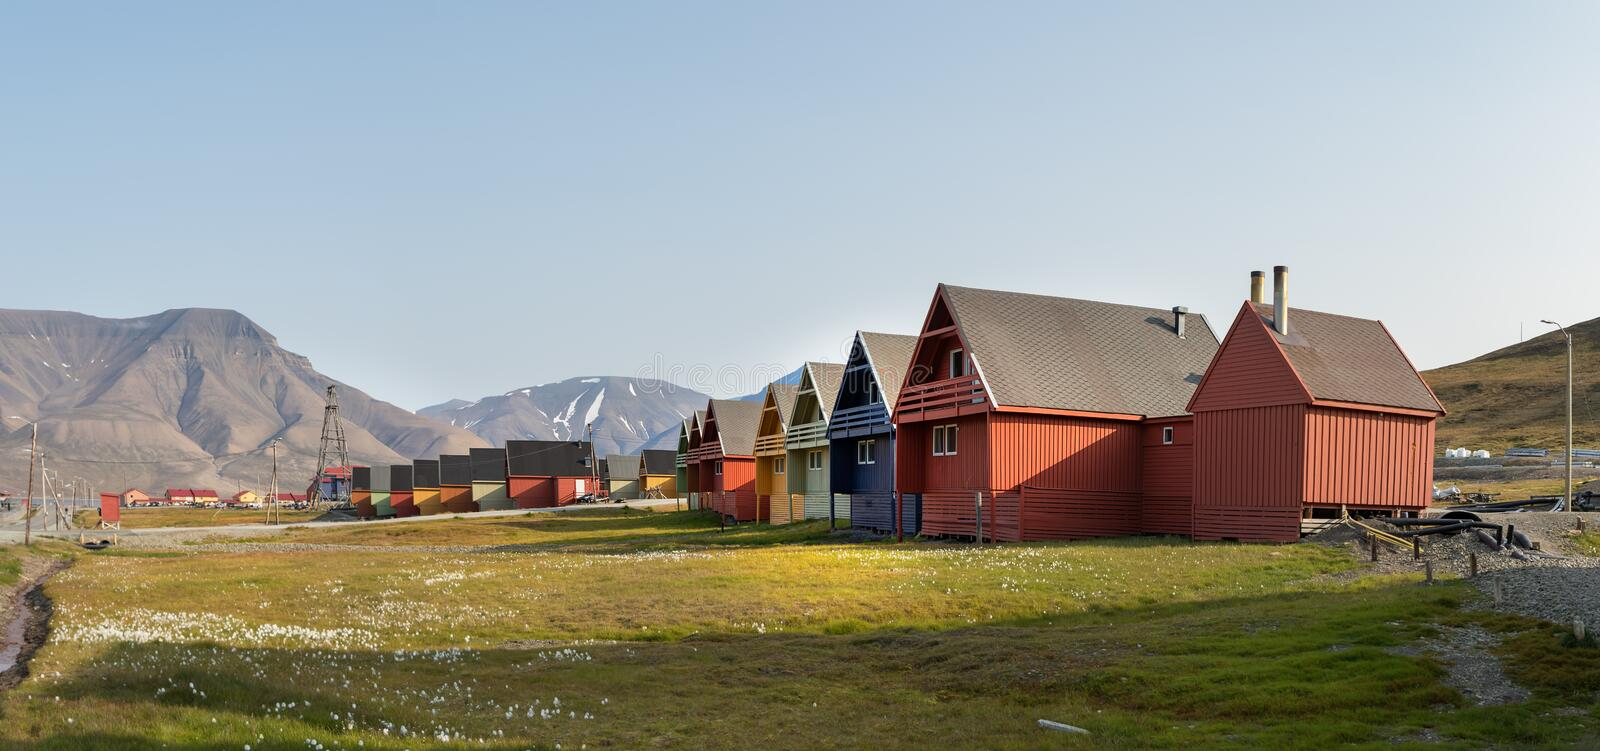 Colorful wooden houses along the road in summer at Longyearbyen, Svalbard. Longyearbyen, Svalbard, Norway - August 13th, 2018: Panorama of colorful wooden houses stock photo